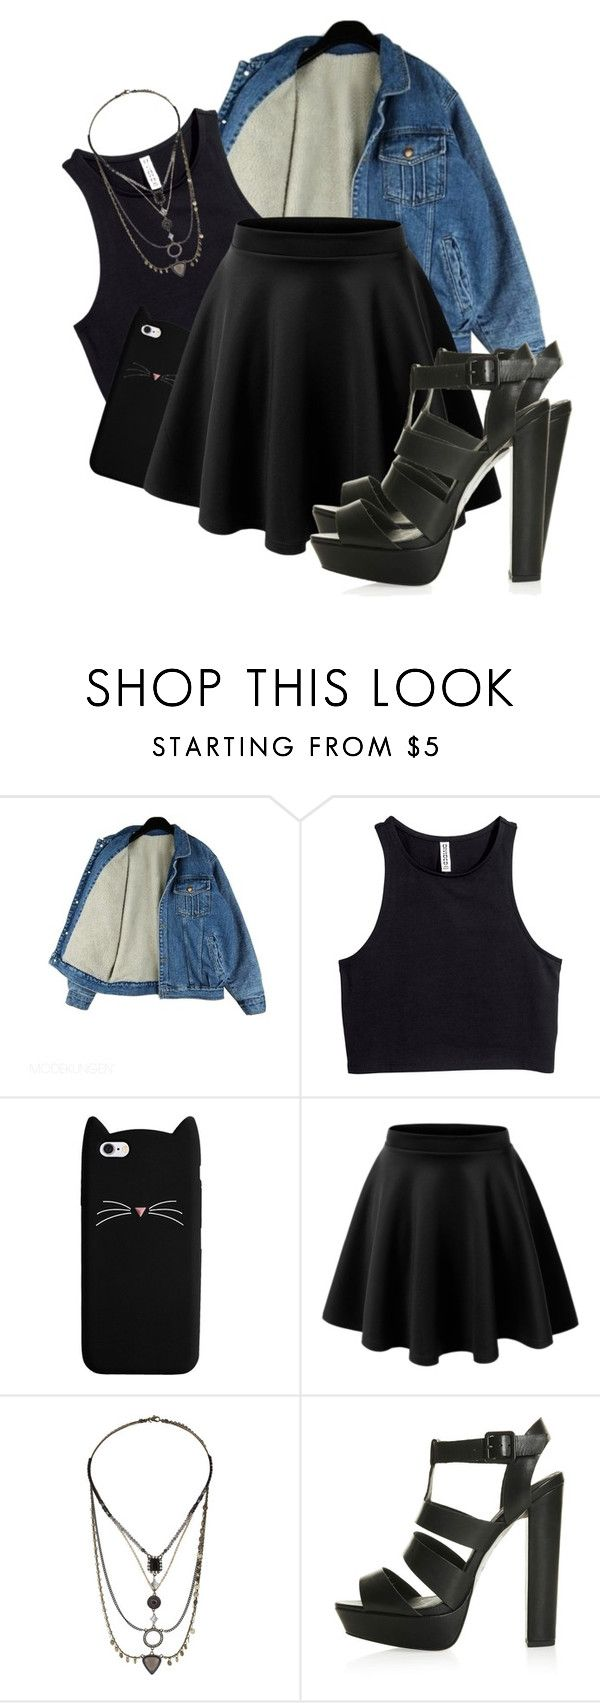 """""""Untitled #918"""" by idc-baby ❤ liked on Polyvore featuring beauty, H&M and Topshop"""